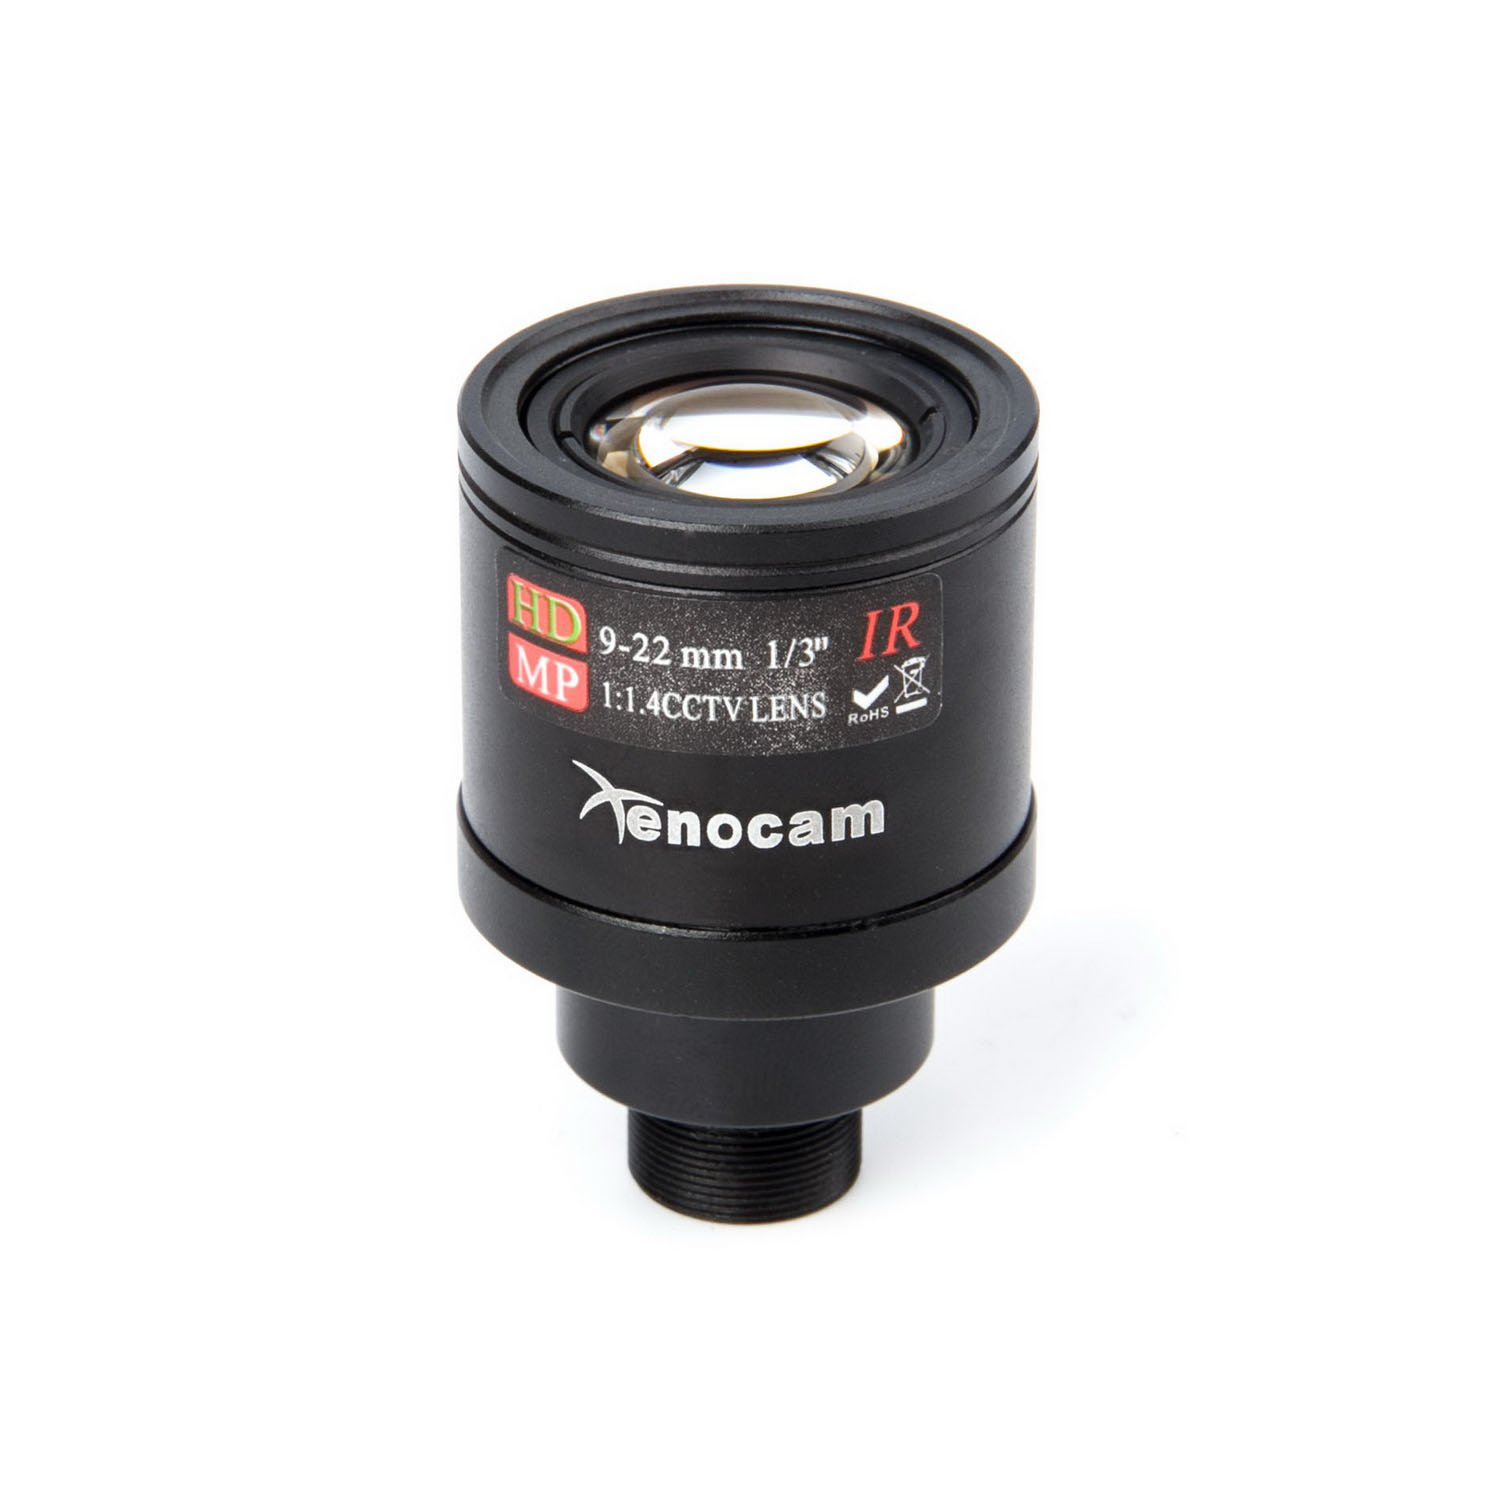 Xenocam 9-22mm 1/3'' IR F1.4 CCTV Video Vari-Focal Zoom Lens for CCTV Security Camera by Xenocam